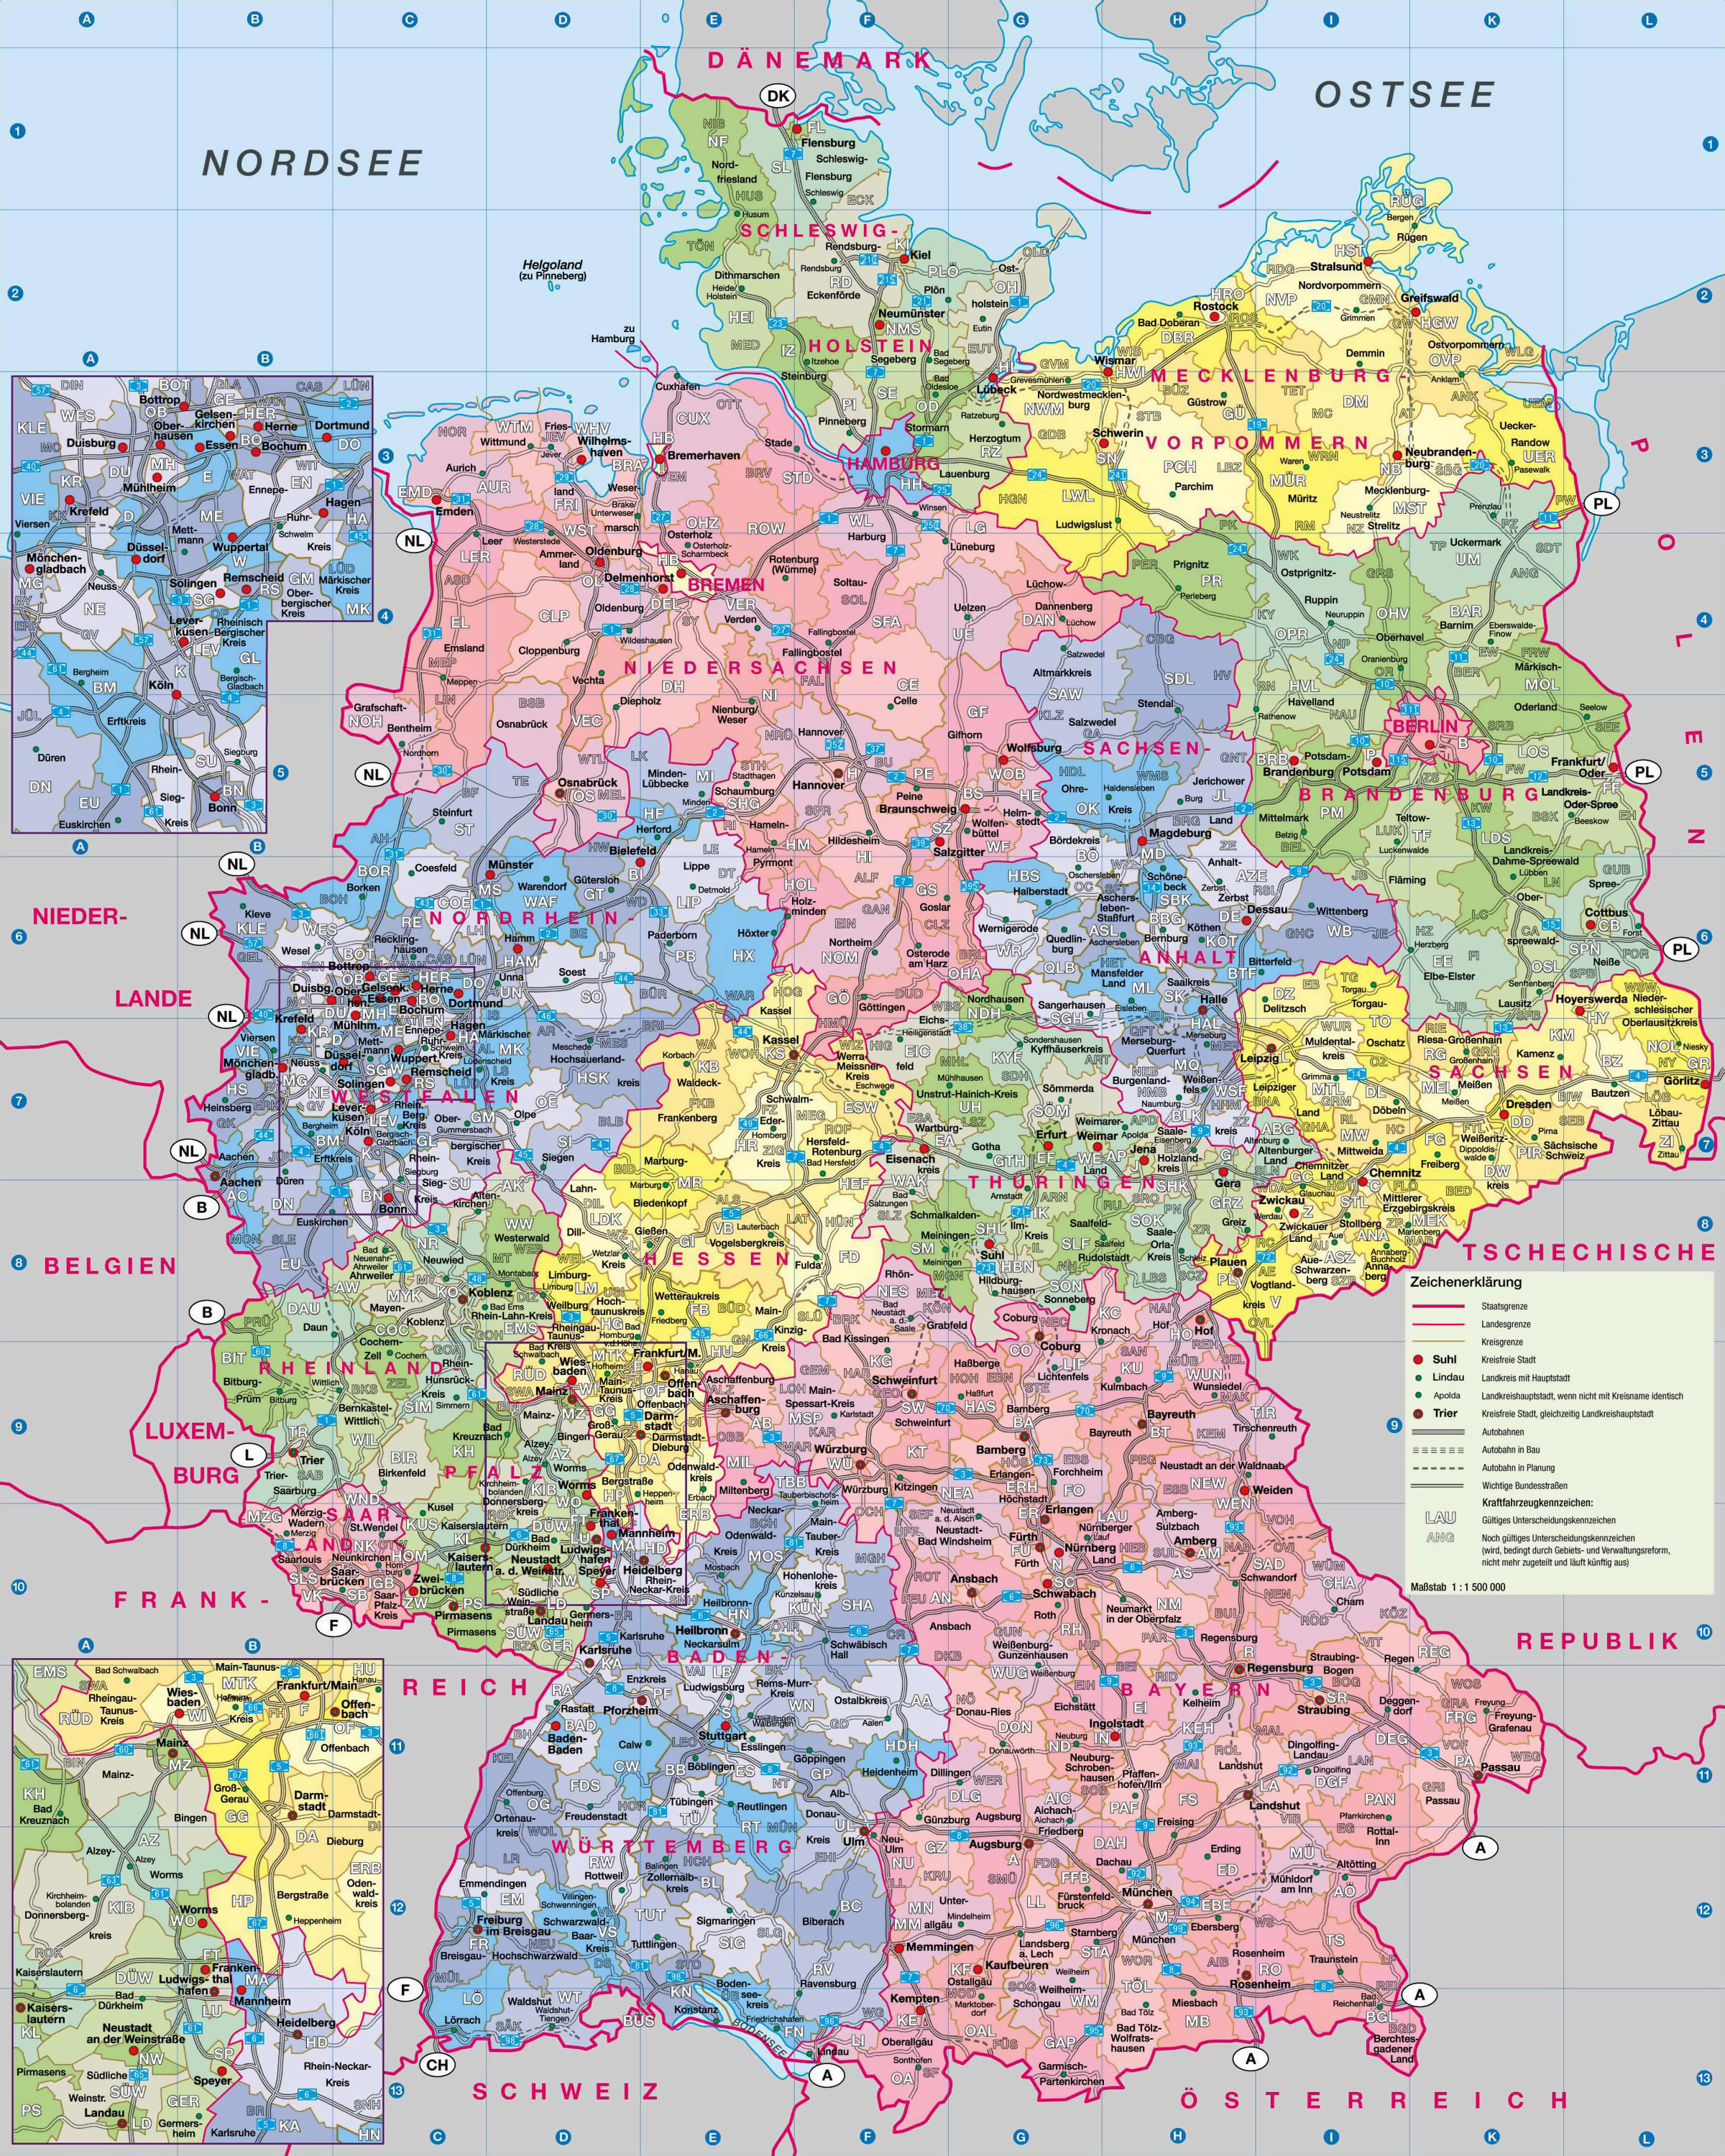 Large Administrative Map Of Germany With Roads And Cities - Germany map with cities